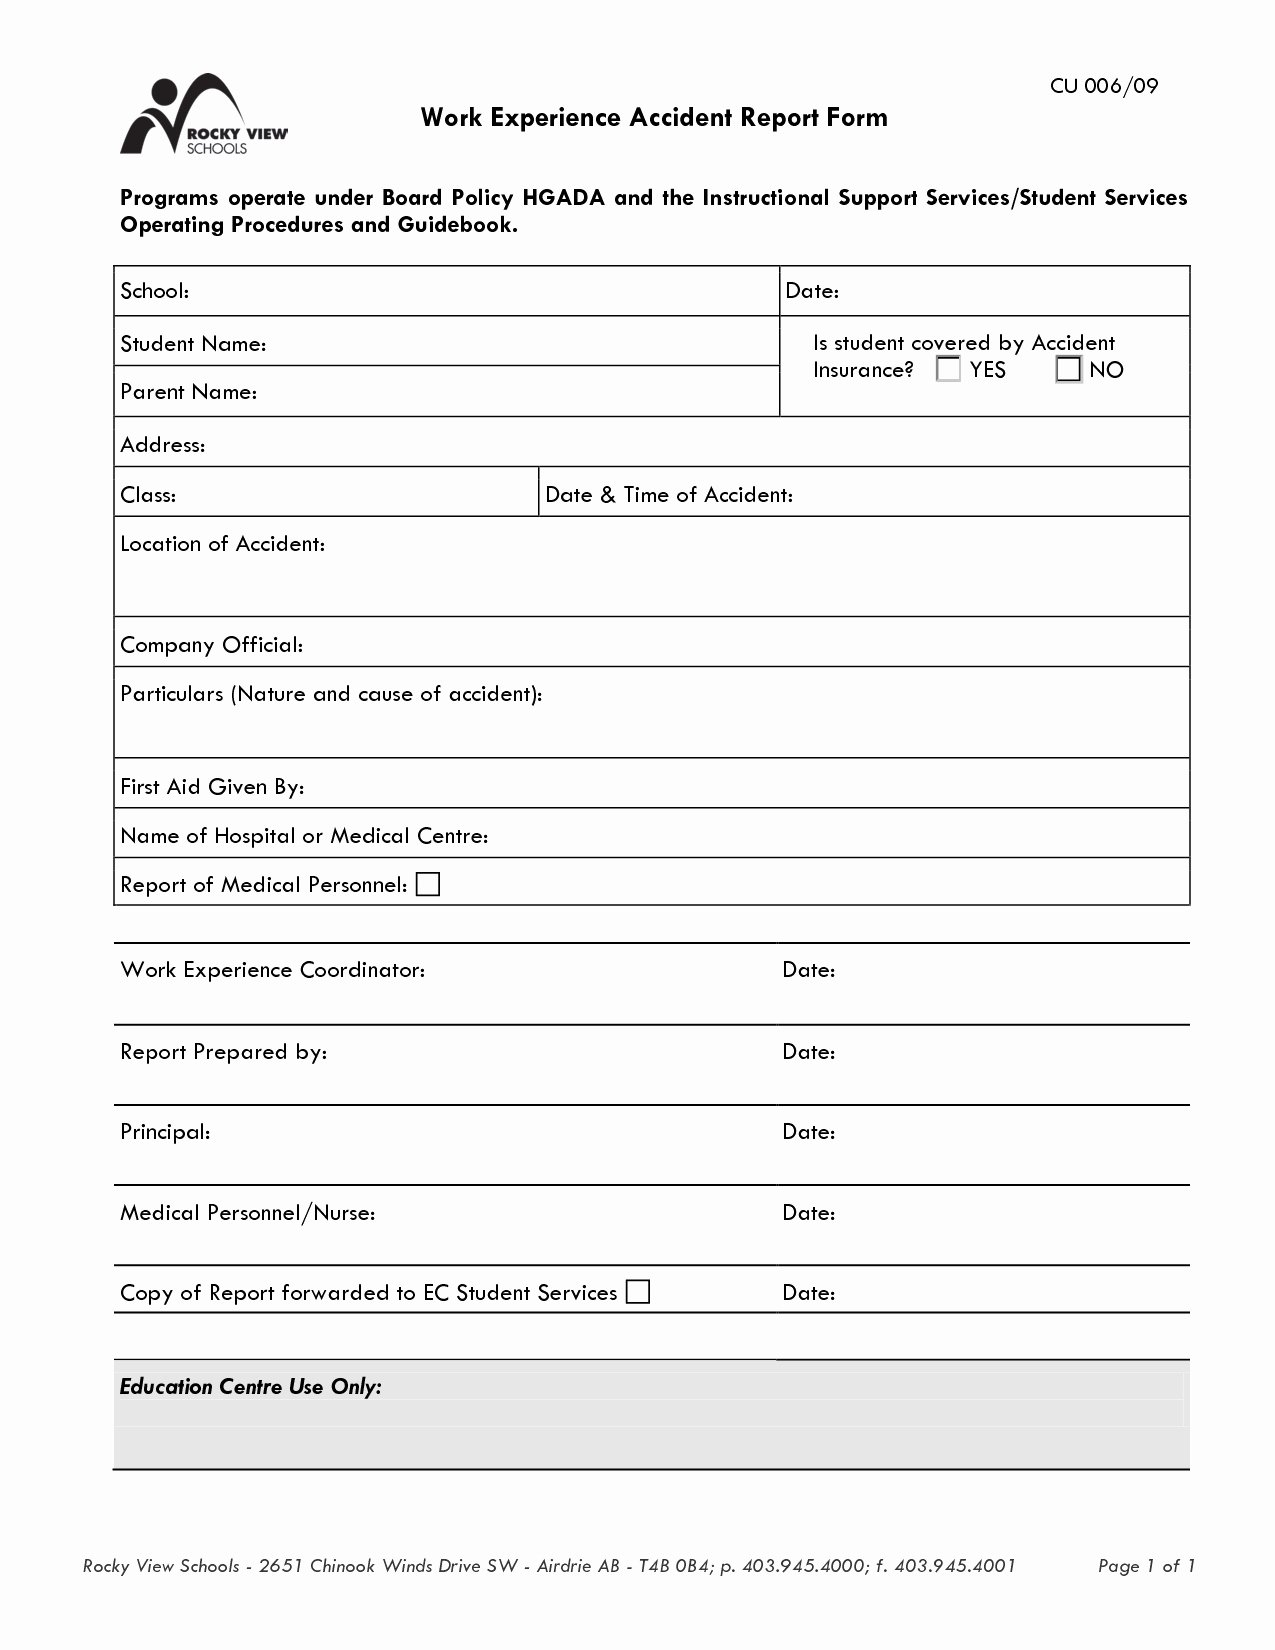 Automobile Accident Report form Template Awesome Accident Report form Template south Africa 8b9b9d7b0c50